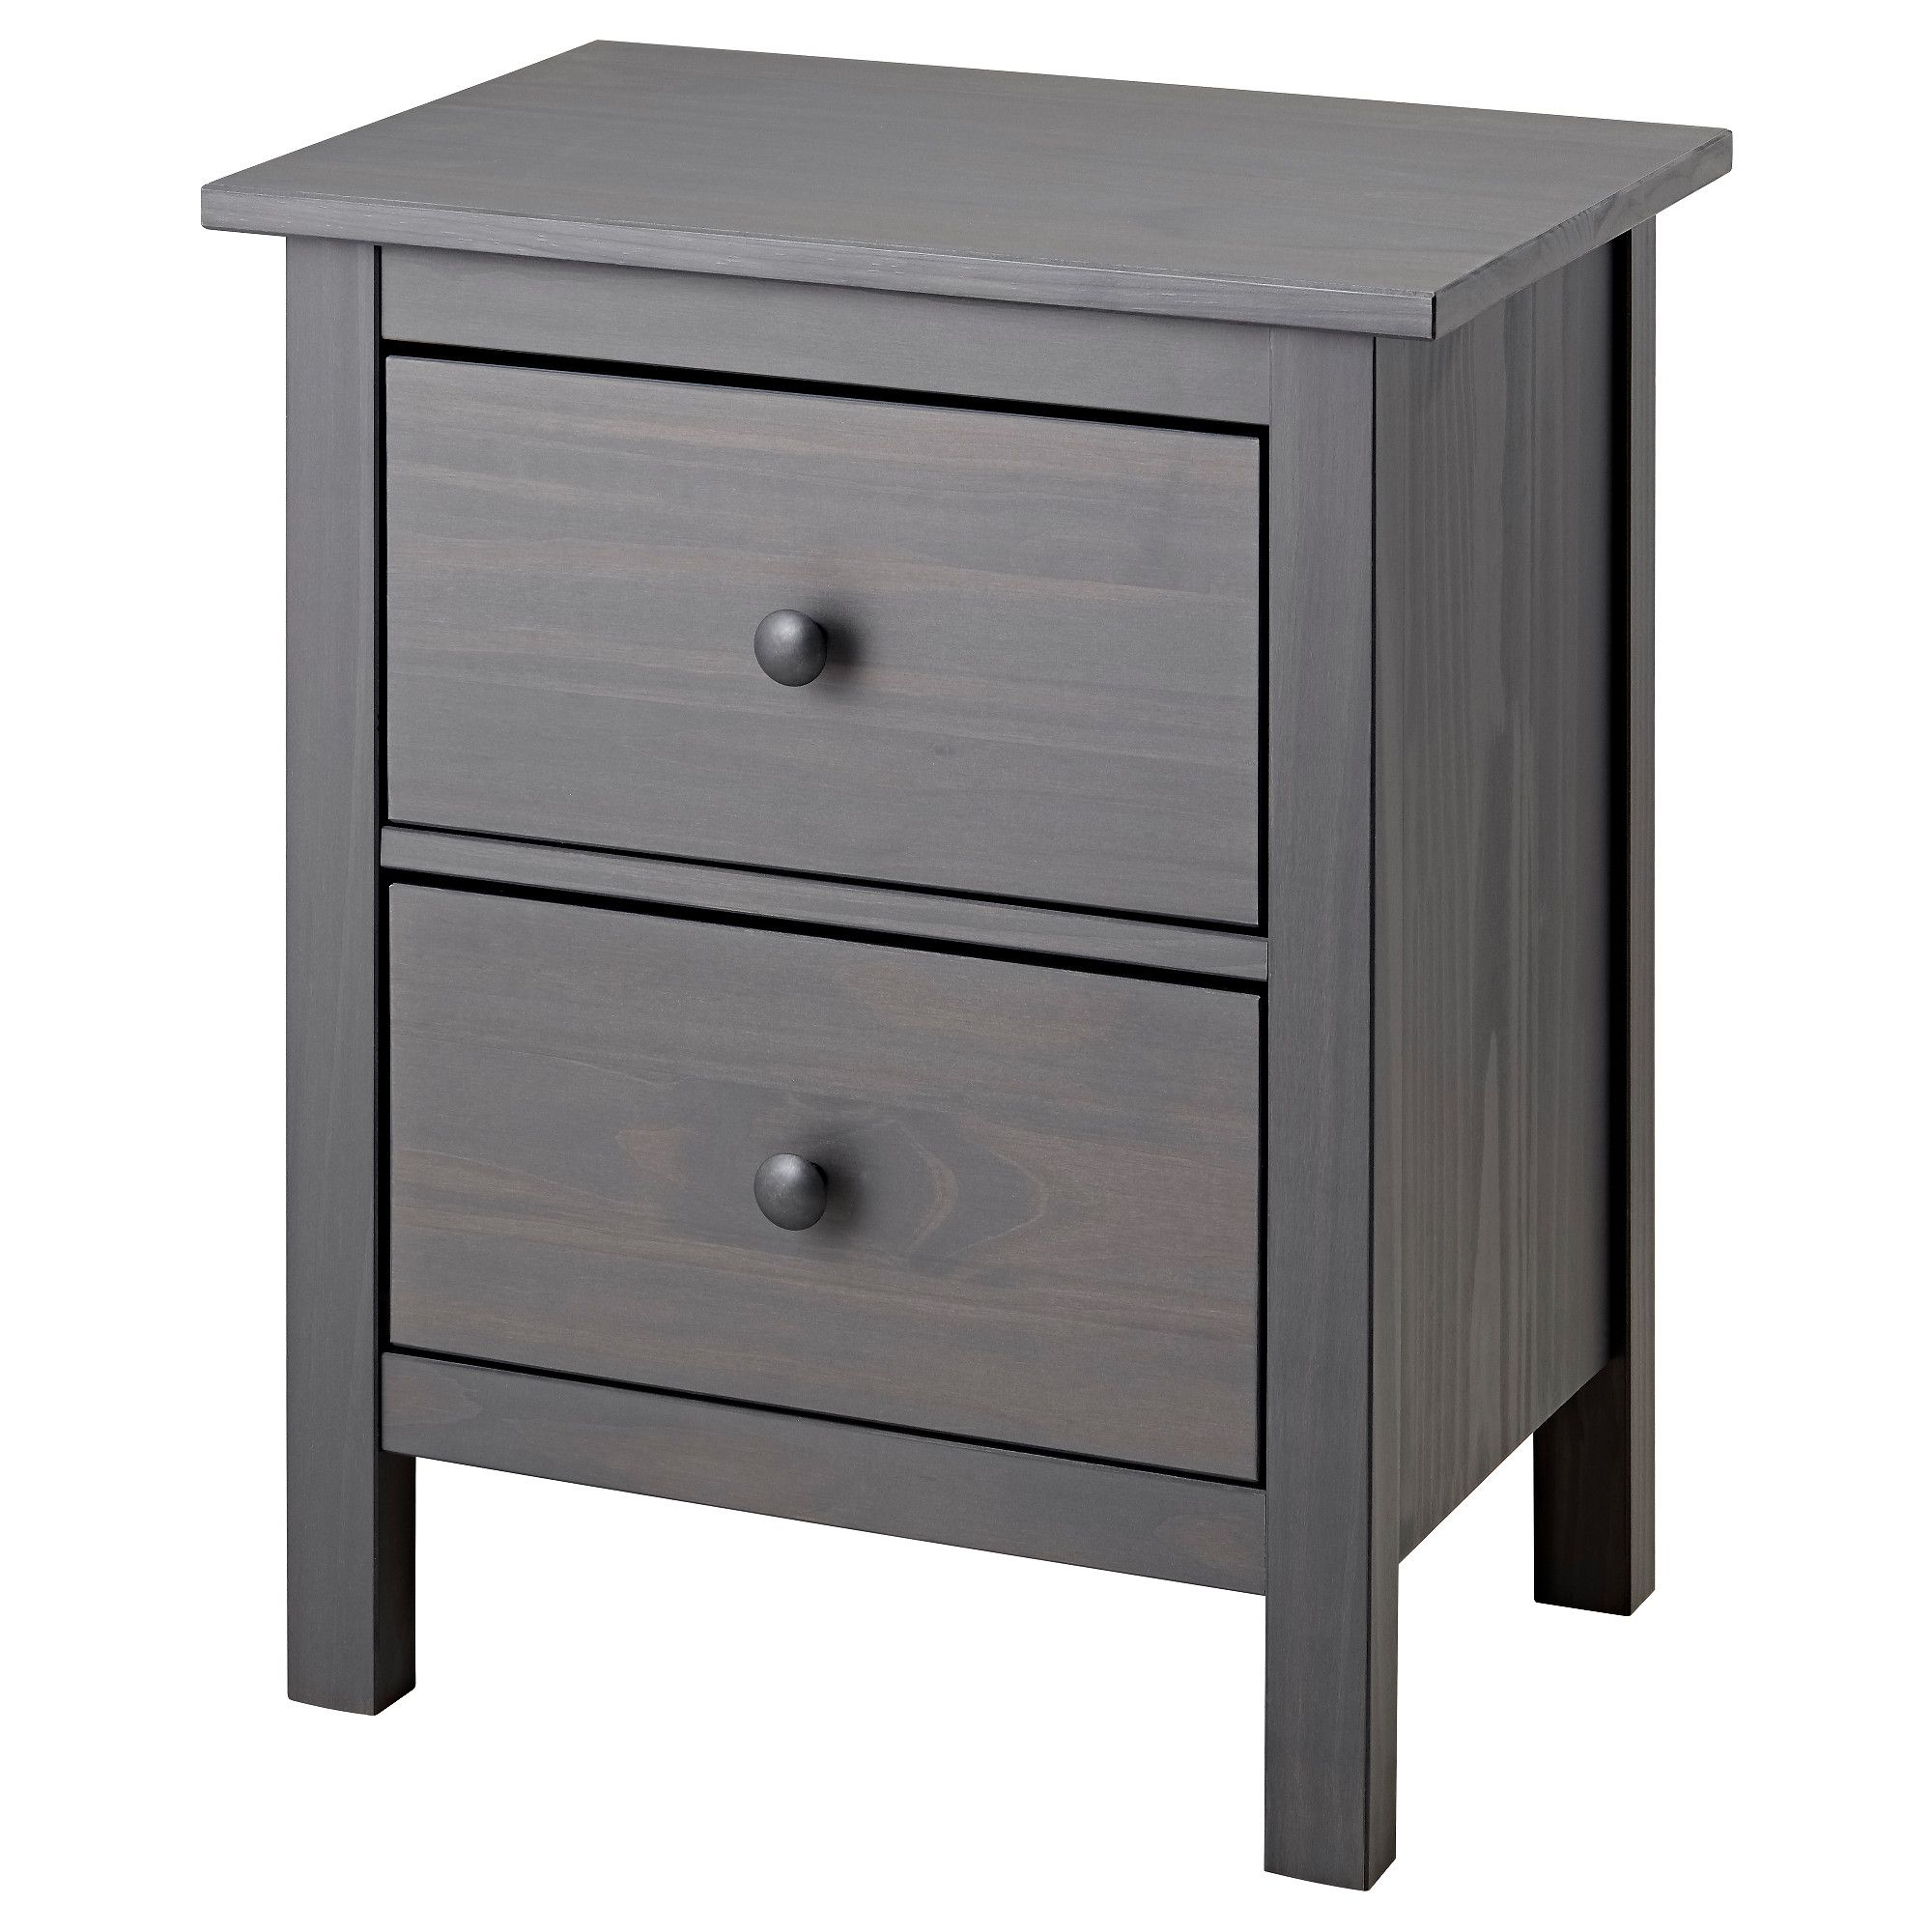 Hemnes 2 Drawer Chest Gray Dark Gray Stained 21 1 4x26